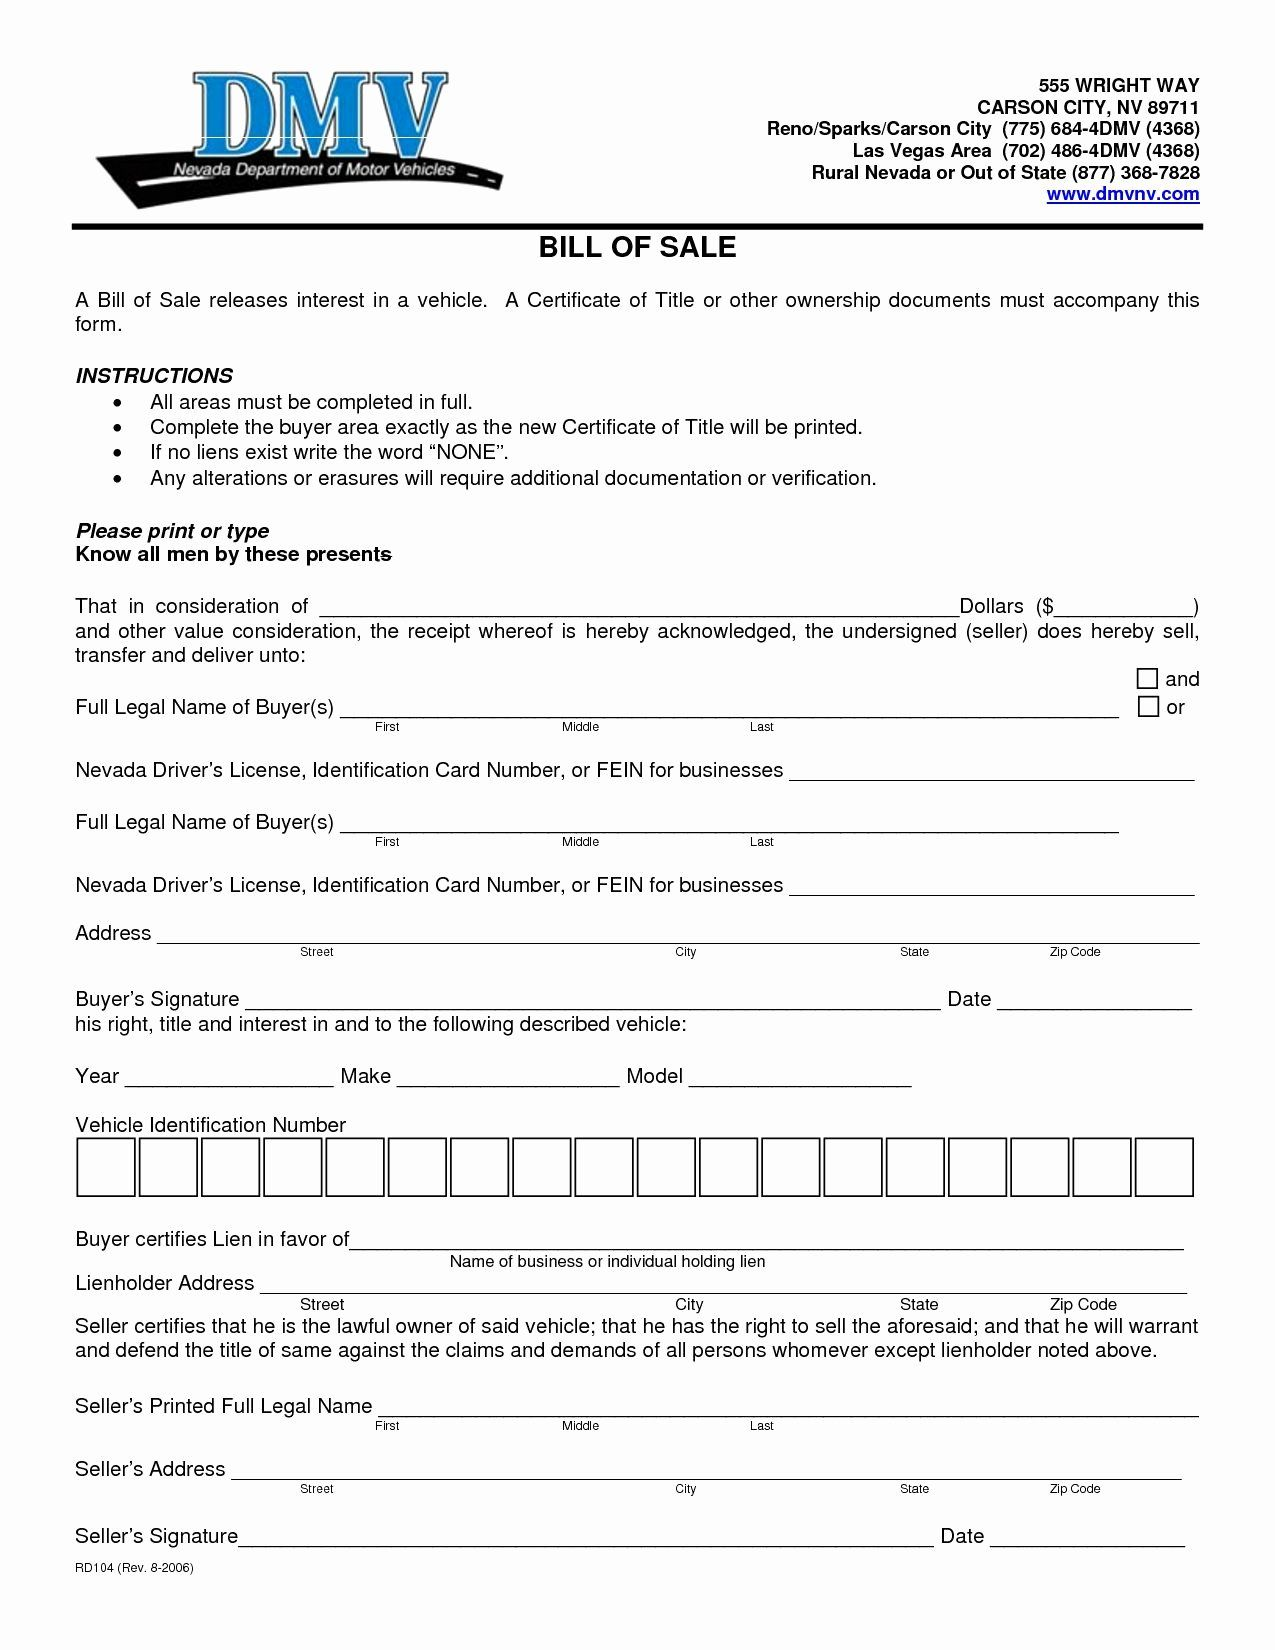 Motorcycle Bill Of Sale Printable Best Of Sample Bill Sale For Mobile Home Glendale Munity Document Booklet Layout Business Template Microsoft Word 2007